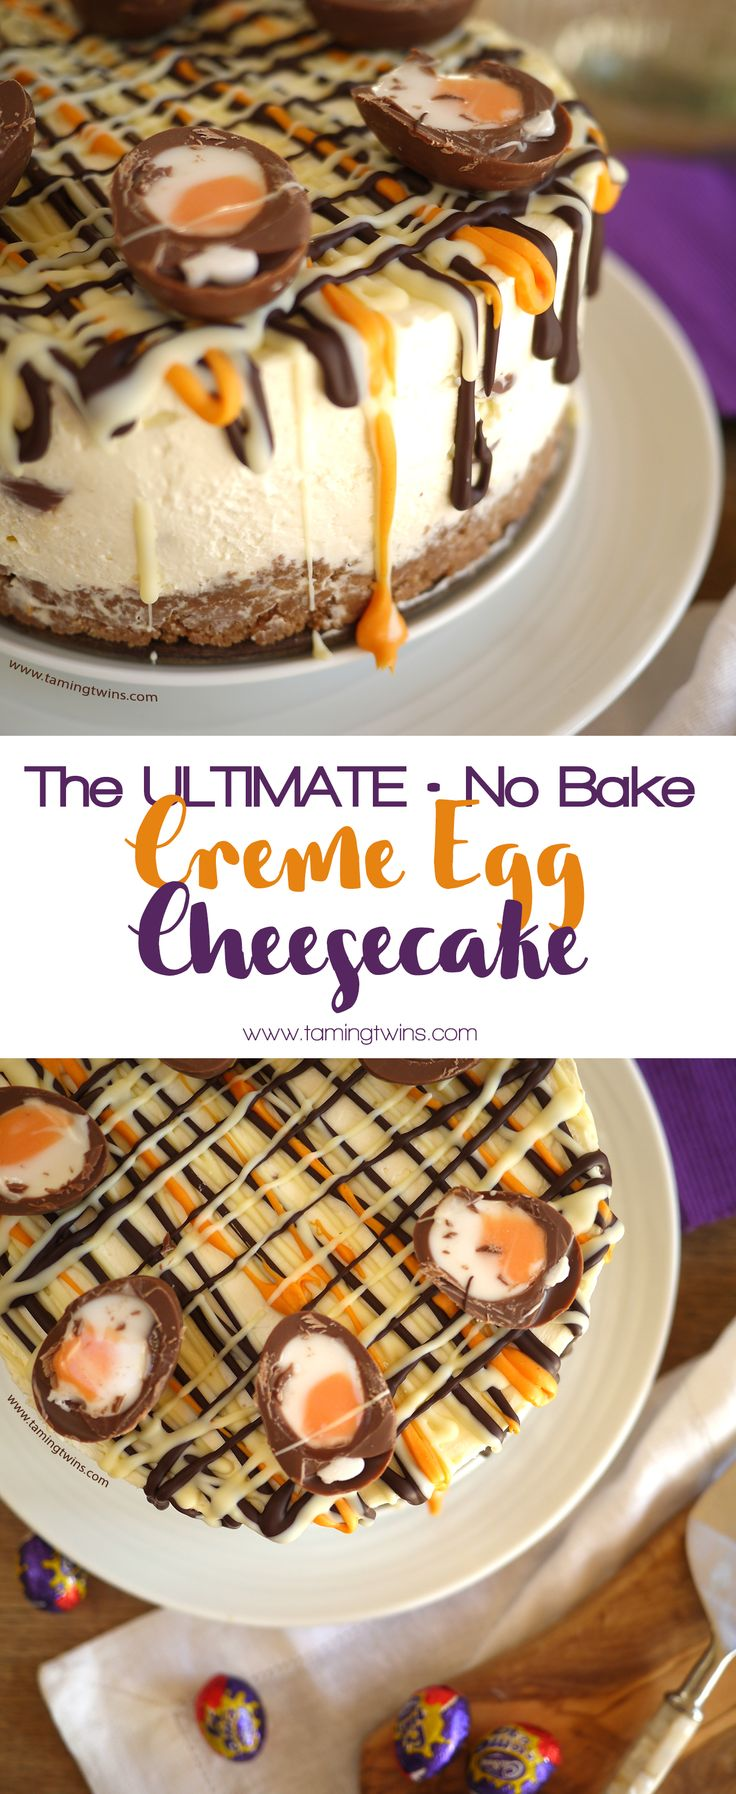 This Cadbury's Creme Egg Cheesecake Recipe (No Bake!) The ultimate Easter chocolate make. Make with Philadelphia cream cheese, whipped cream (no eggs or gelatine) this is also suitable for vegetarians. Happy Easter!